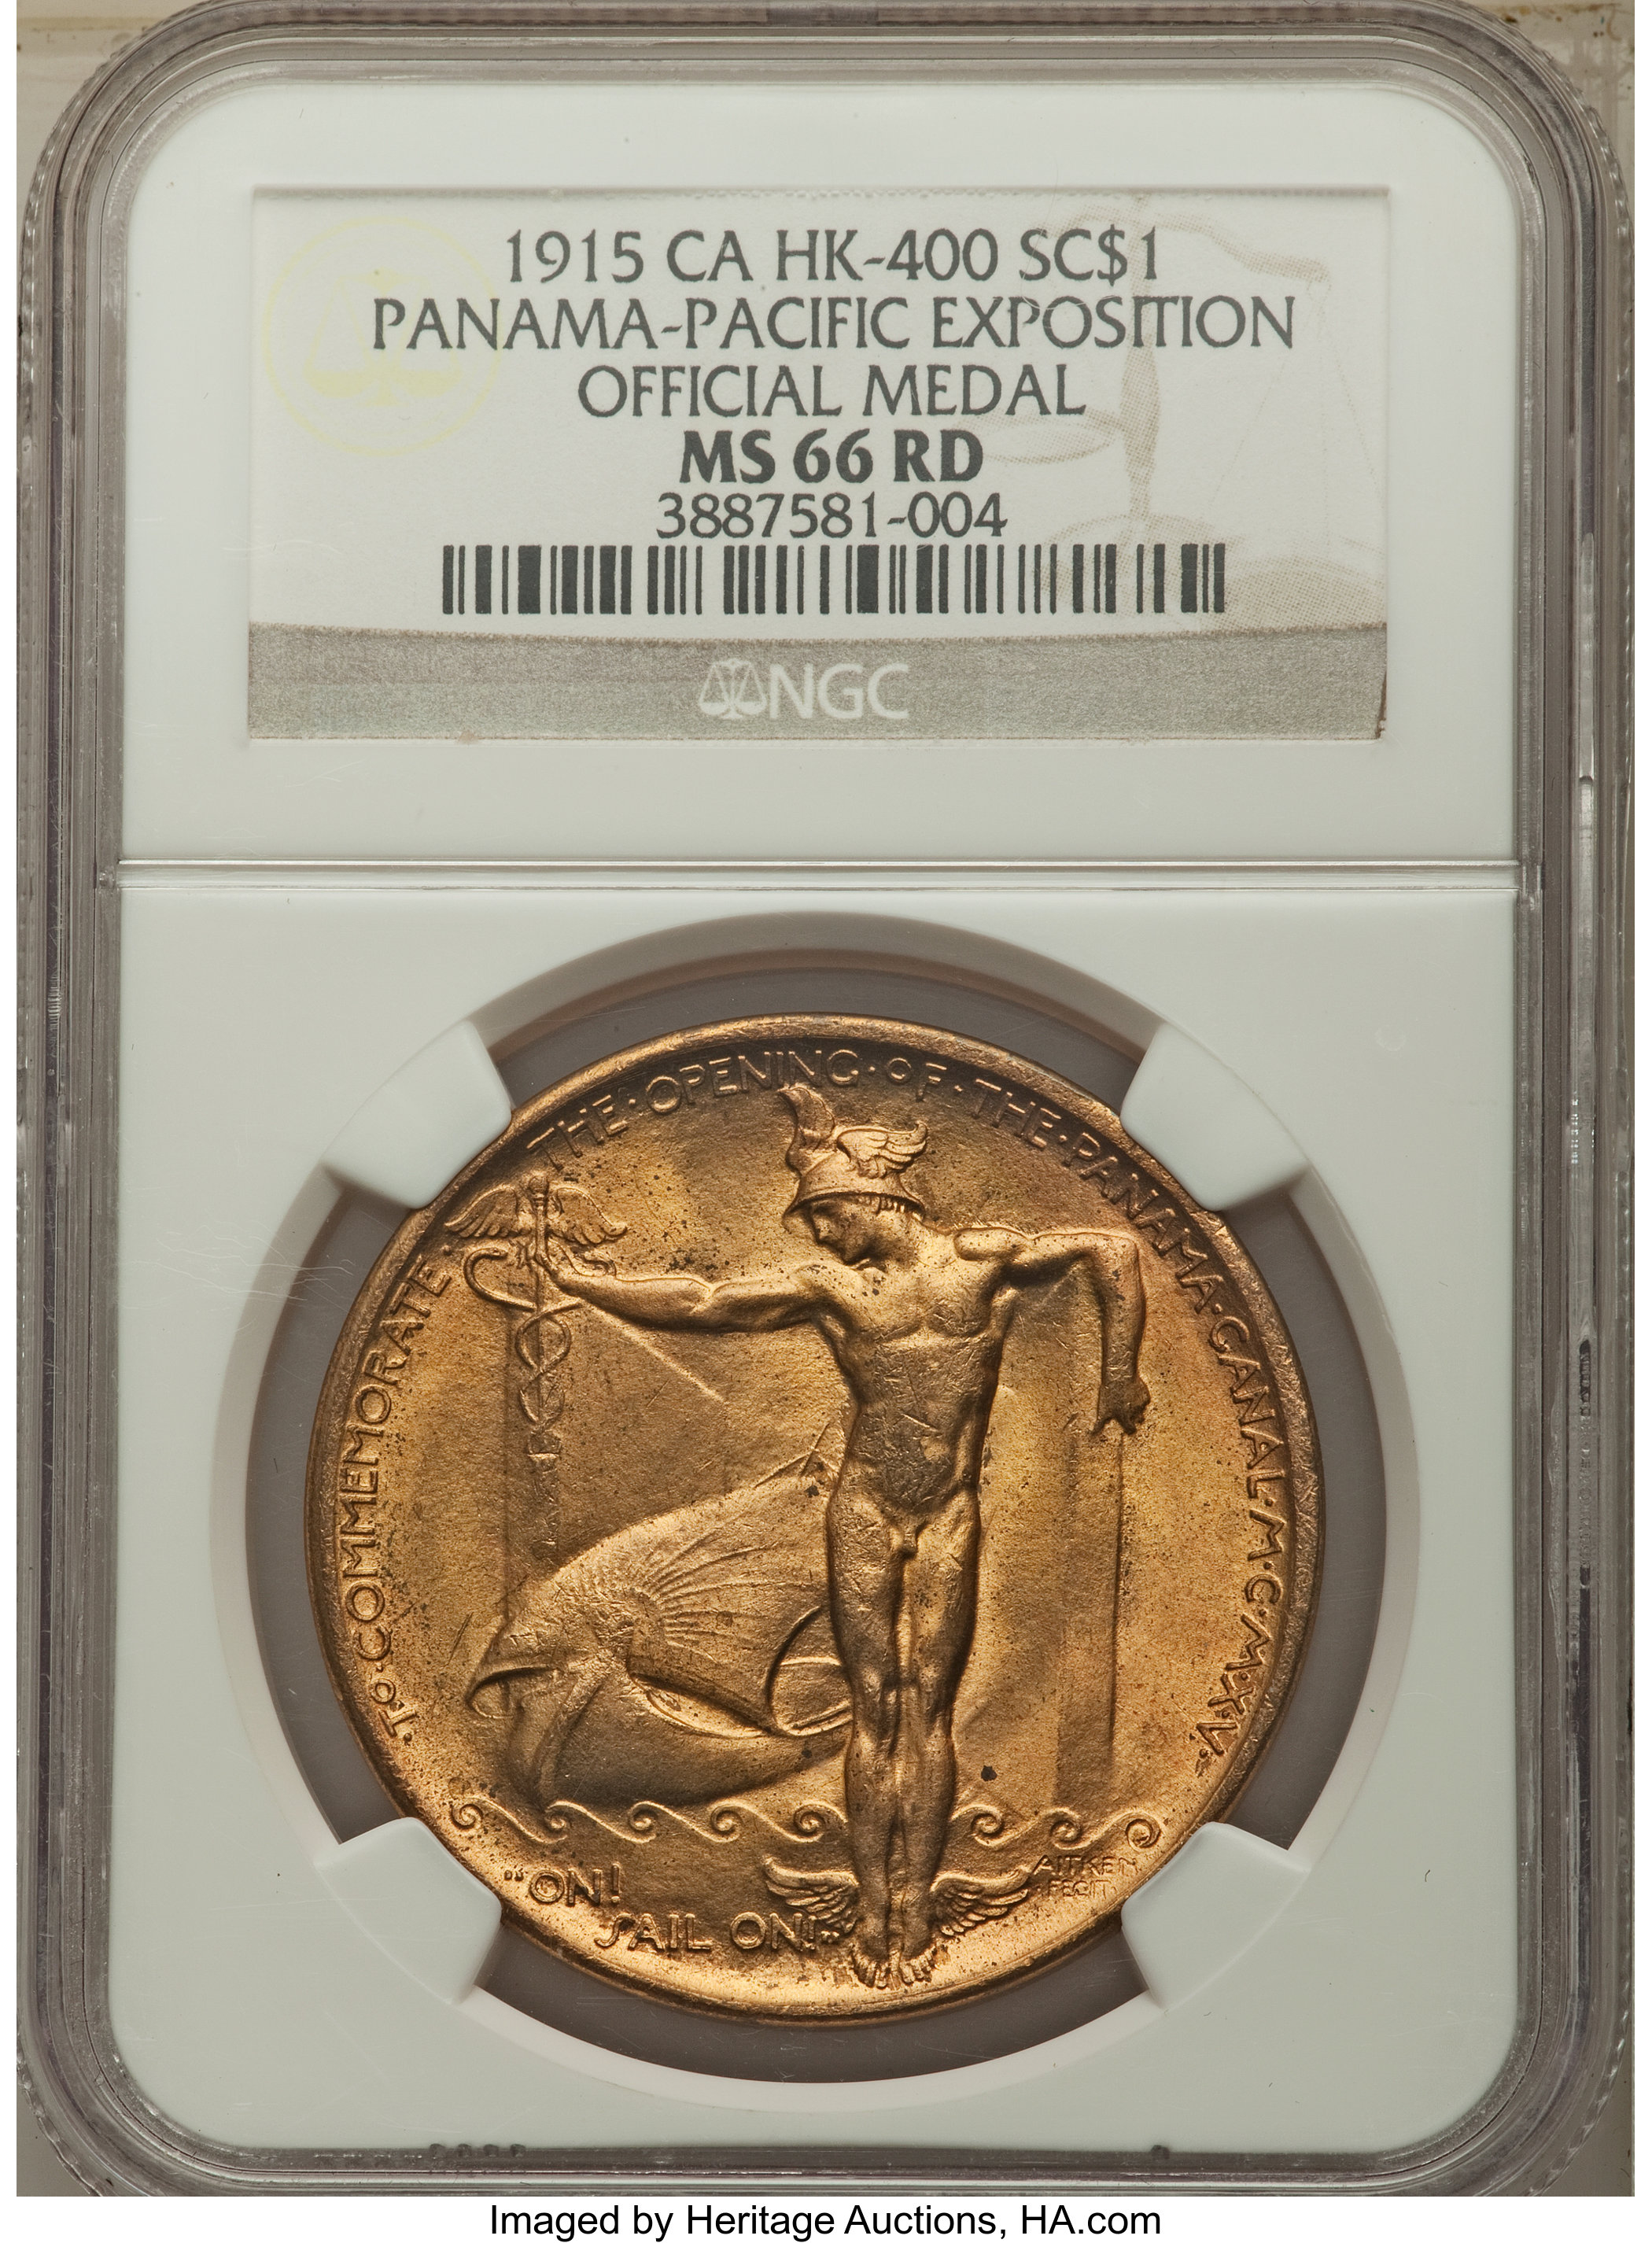 sample image for 1915 Pan-Pac Expo, Official, Bronze SC$1 MS RD (HK-400)